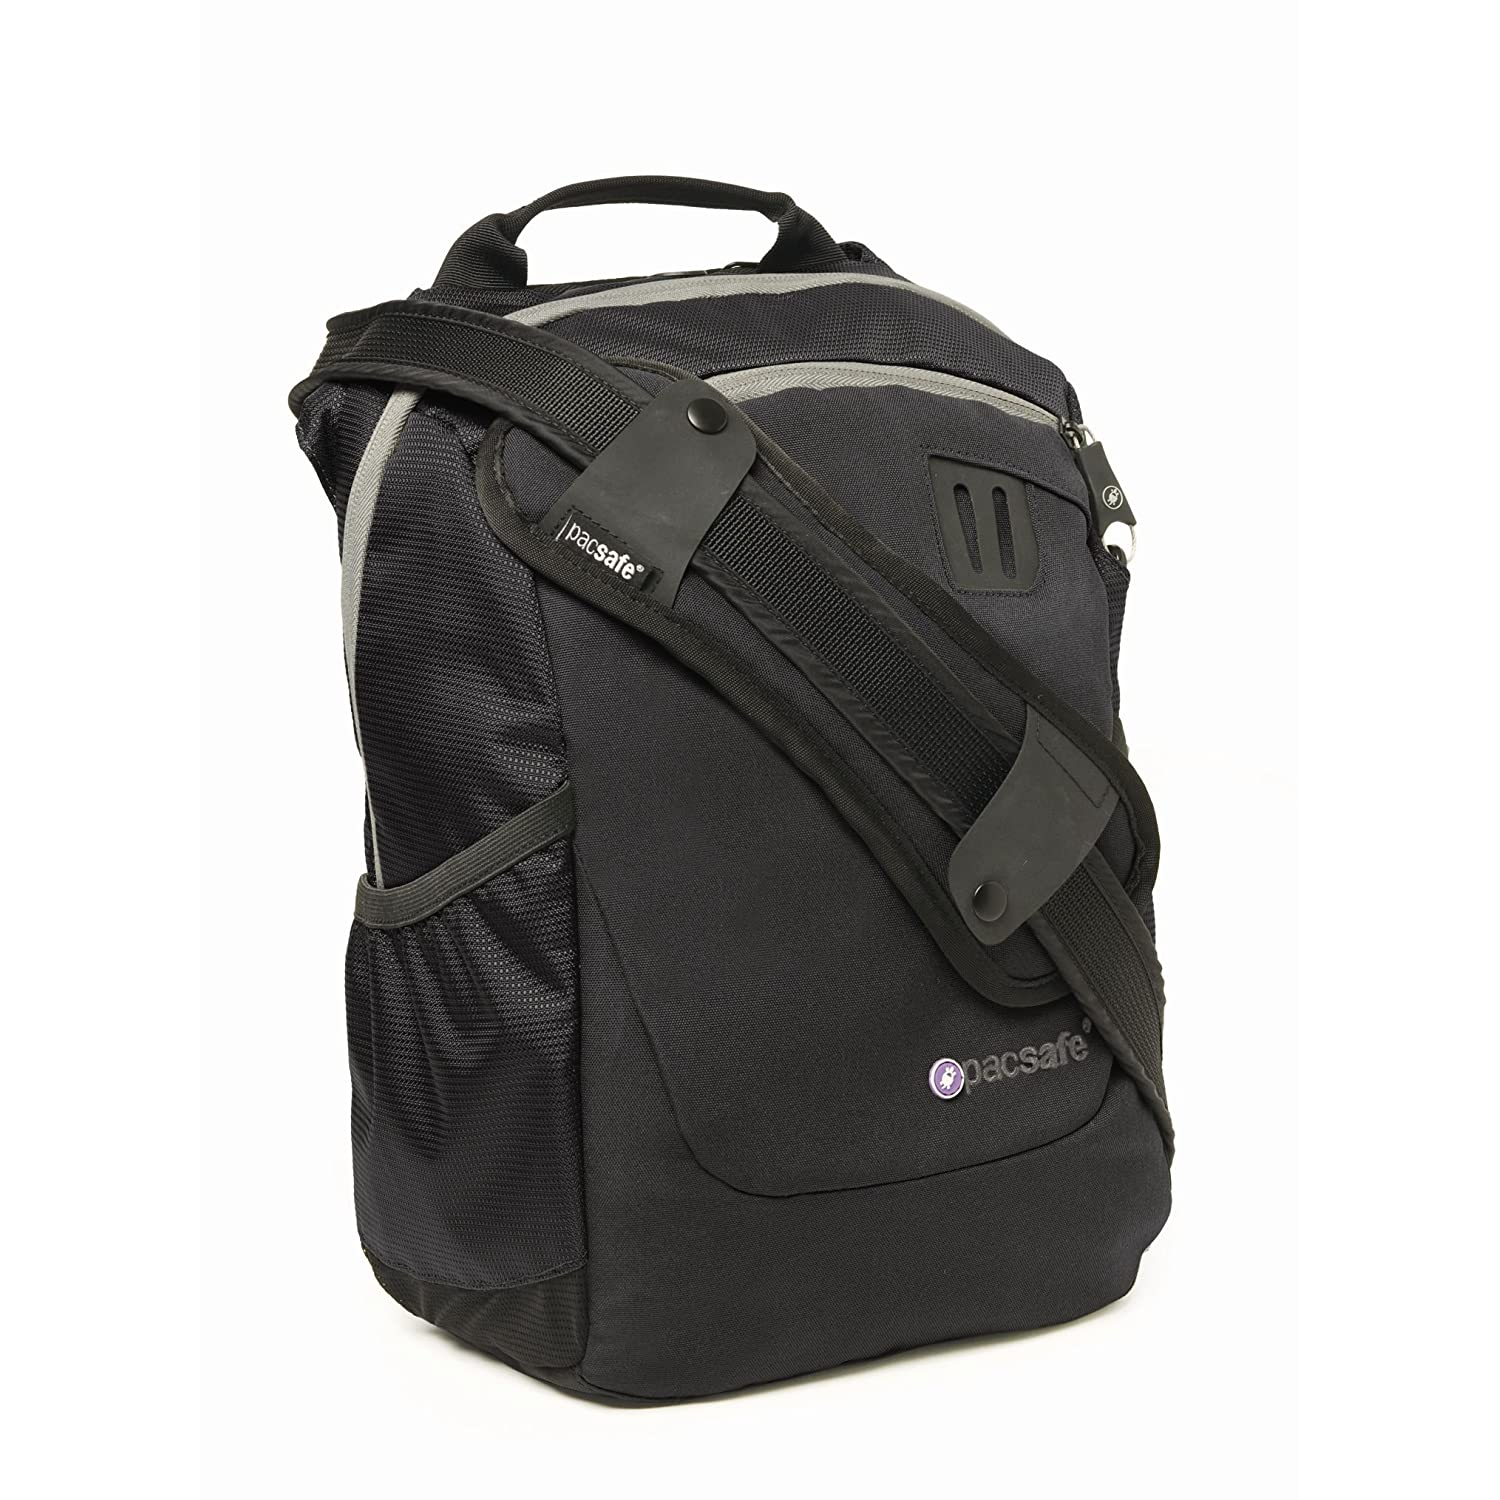 Pacsafe VentureSafe 300 Secure Travel Bag Black